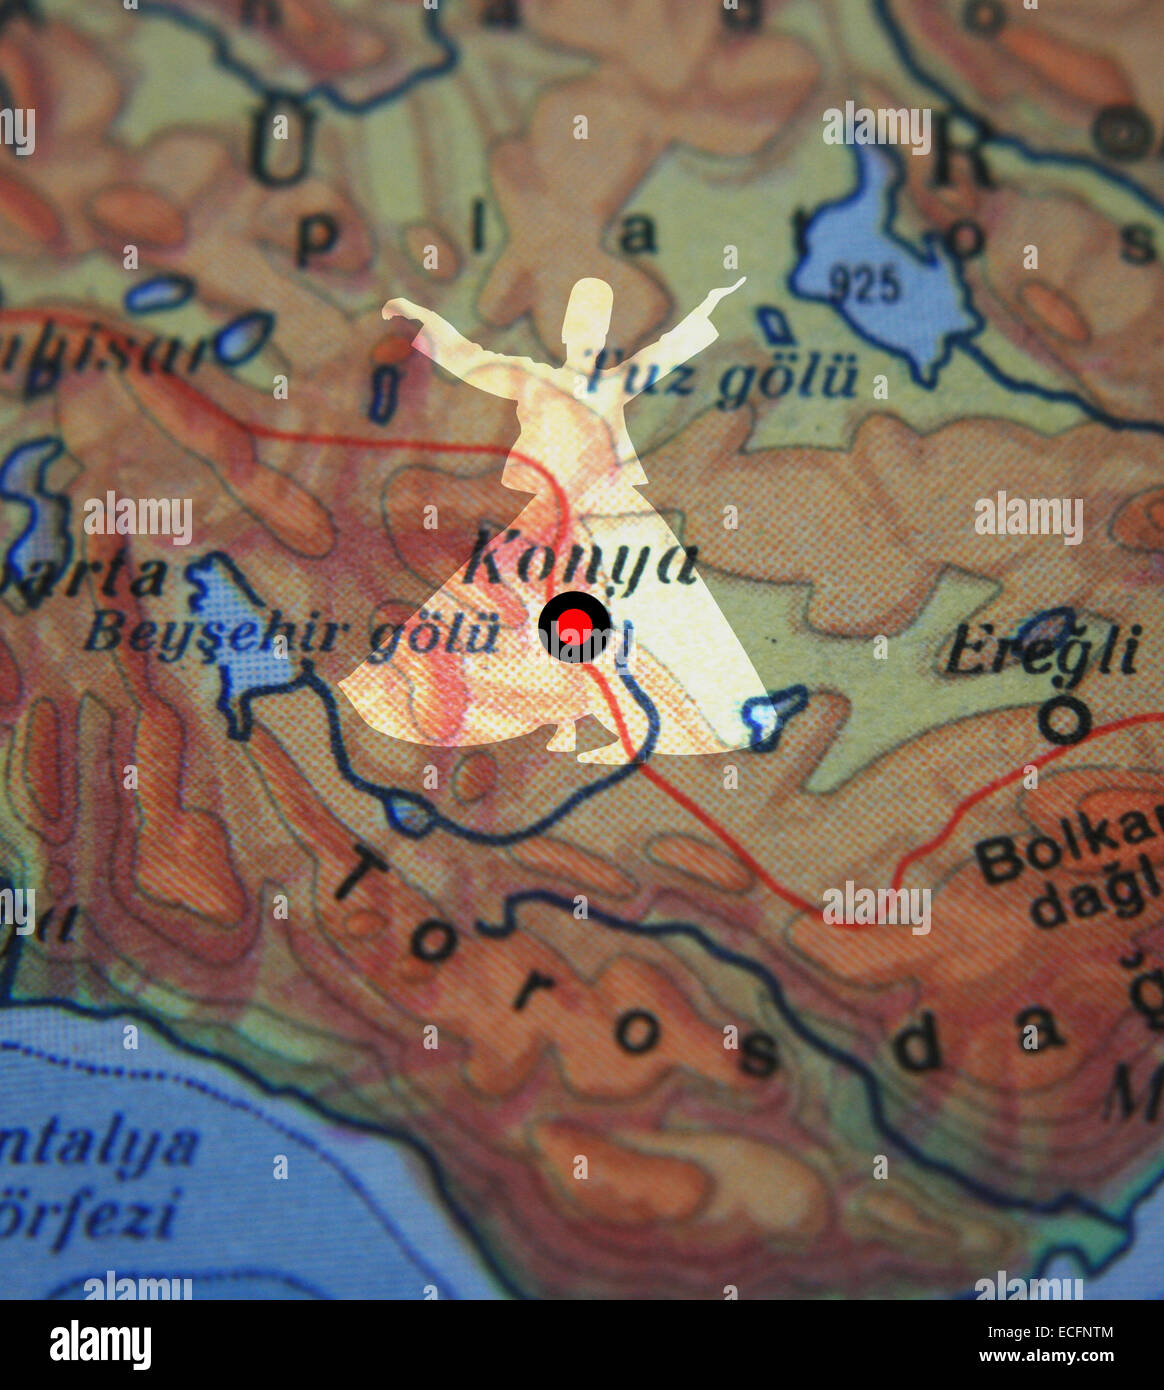 Konya city on map and whirling dervish in Turkey - Stock Image